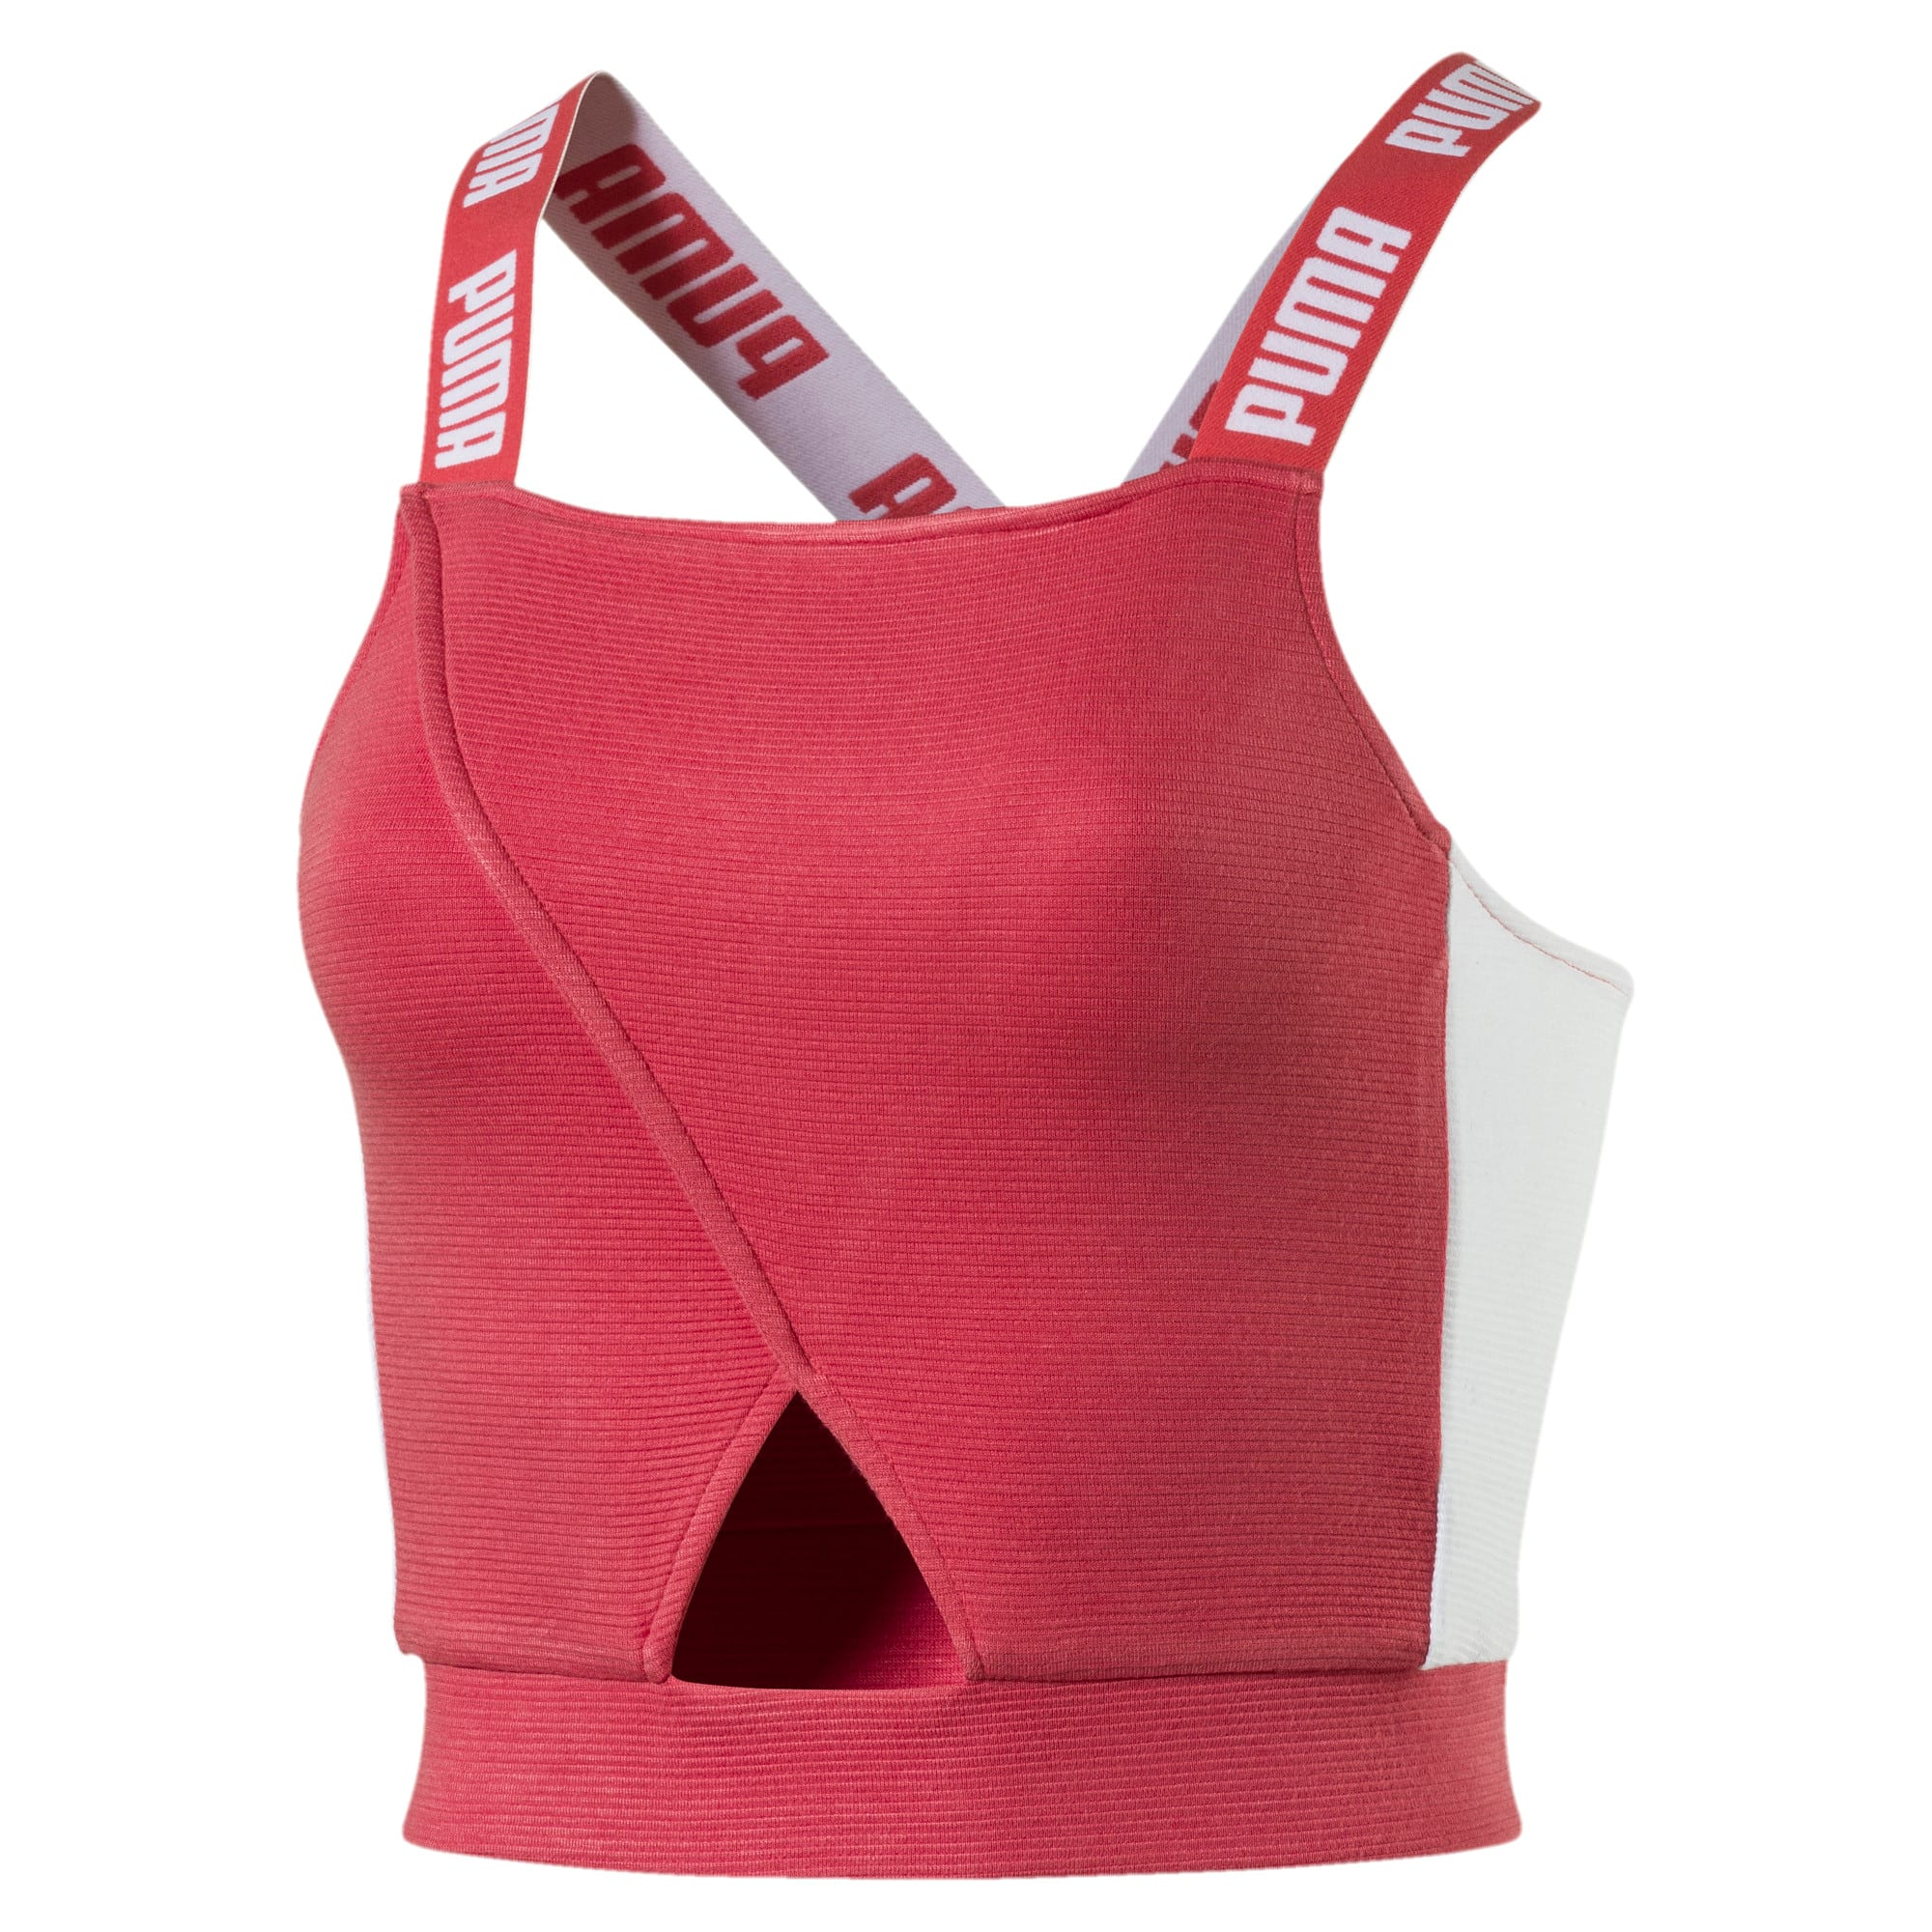 Thumbnail 1 of Archive Women's Crop Top, Spiced Coral, medium-IND